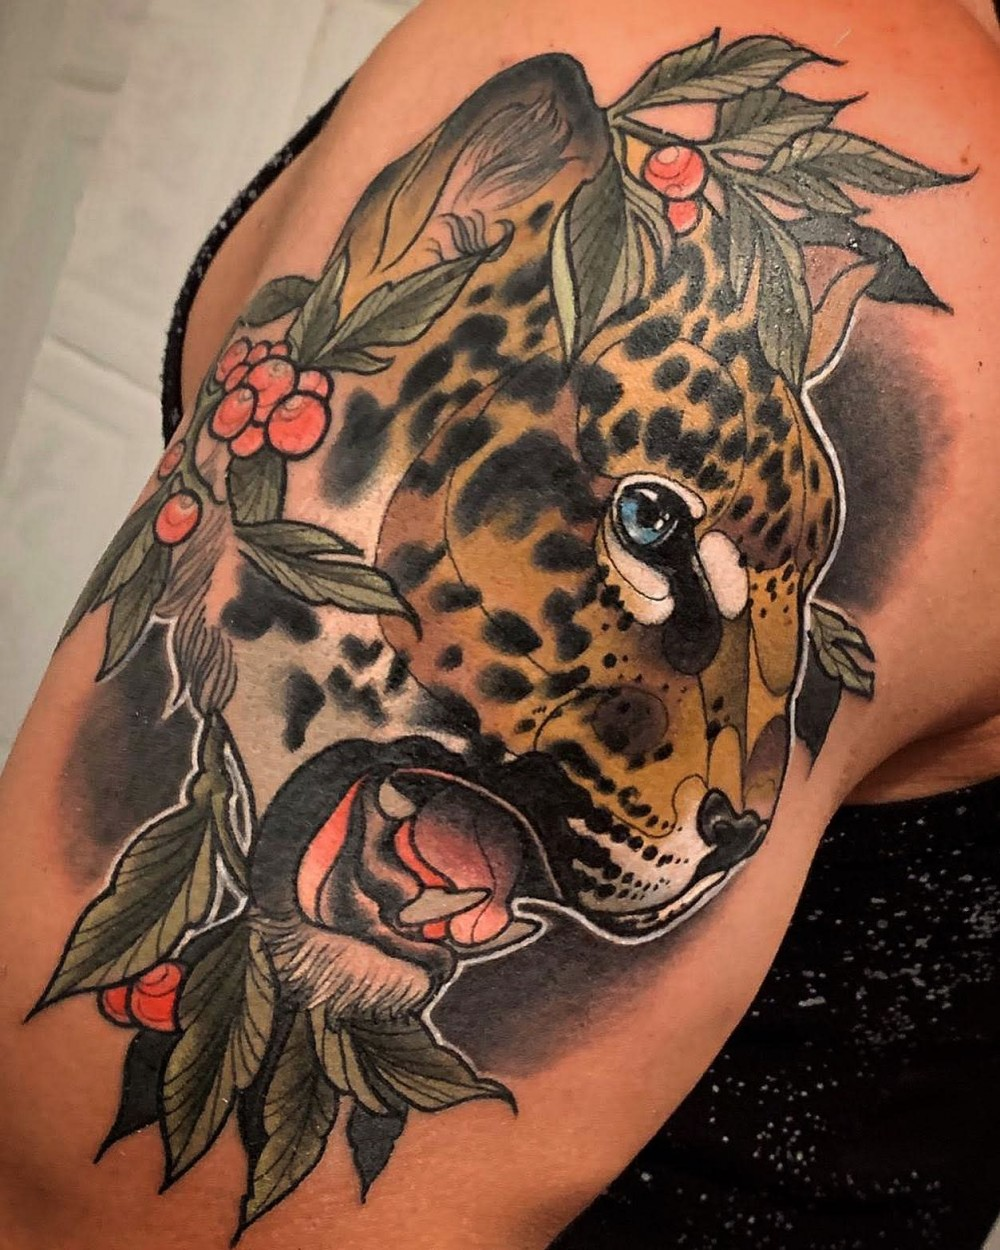 """Here Are 70+ Unique Traditional Jaguar Tattoo Ideas That Will Give Strength For Men jaguar tattoo traditional jaguar tattoo meaning black jaguar tattoo jaguar tattoo old school jaguar tattoo on hand simple jaguar tattoo small jaguar tattoo jaguar tattoo tribal jaguar tattoo chest jaguar tattoo black and grey jaguar tattoo mayan jagua hand tattoo jaguar tattoo forearm jaguar tattoo back jaguar tattoo small jaguar tattoo american traditional tattoo ideas for men strength tattoos unique tattoos"""